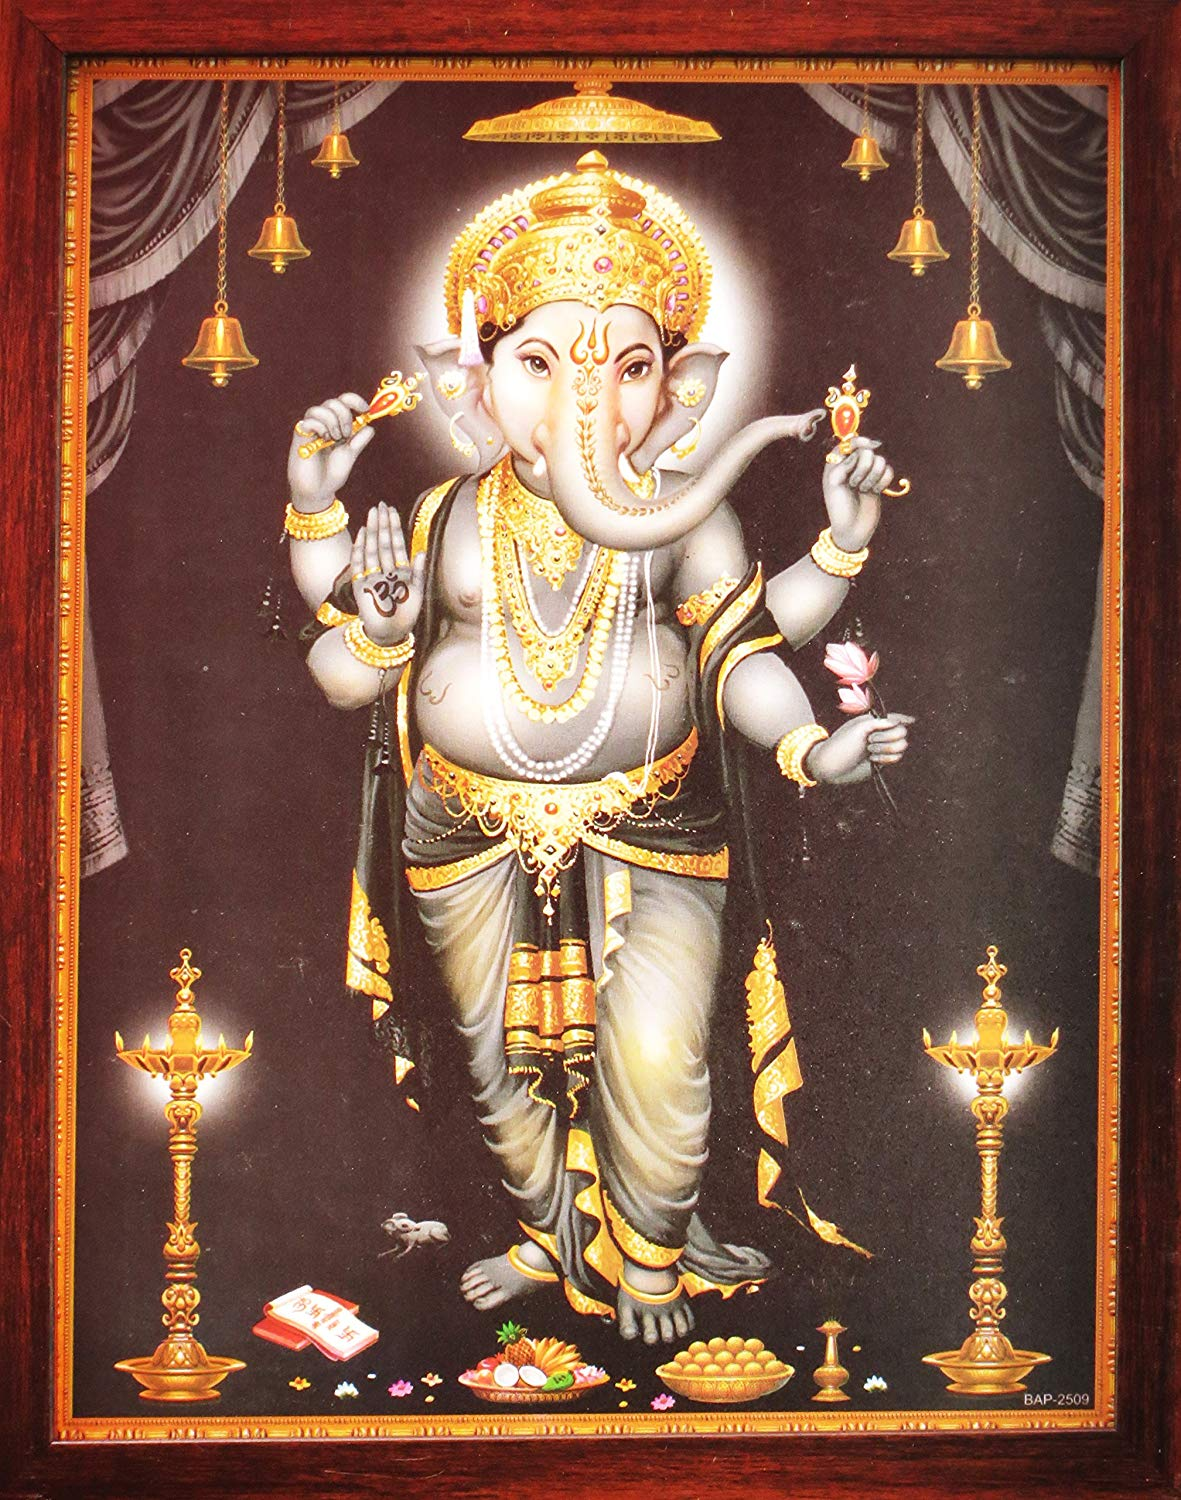 Lord Ganpati Ganesha Poster Painting with Frame, a Auspicious Hindi God Painting for Every Home/Office and Gift Purpose